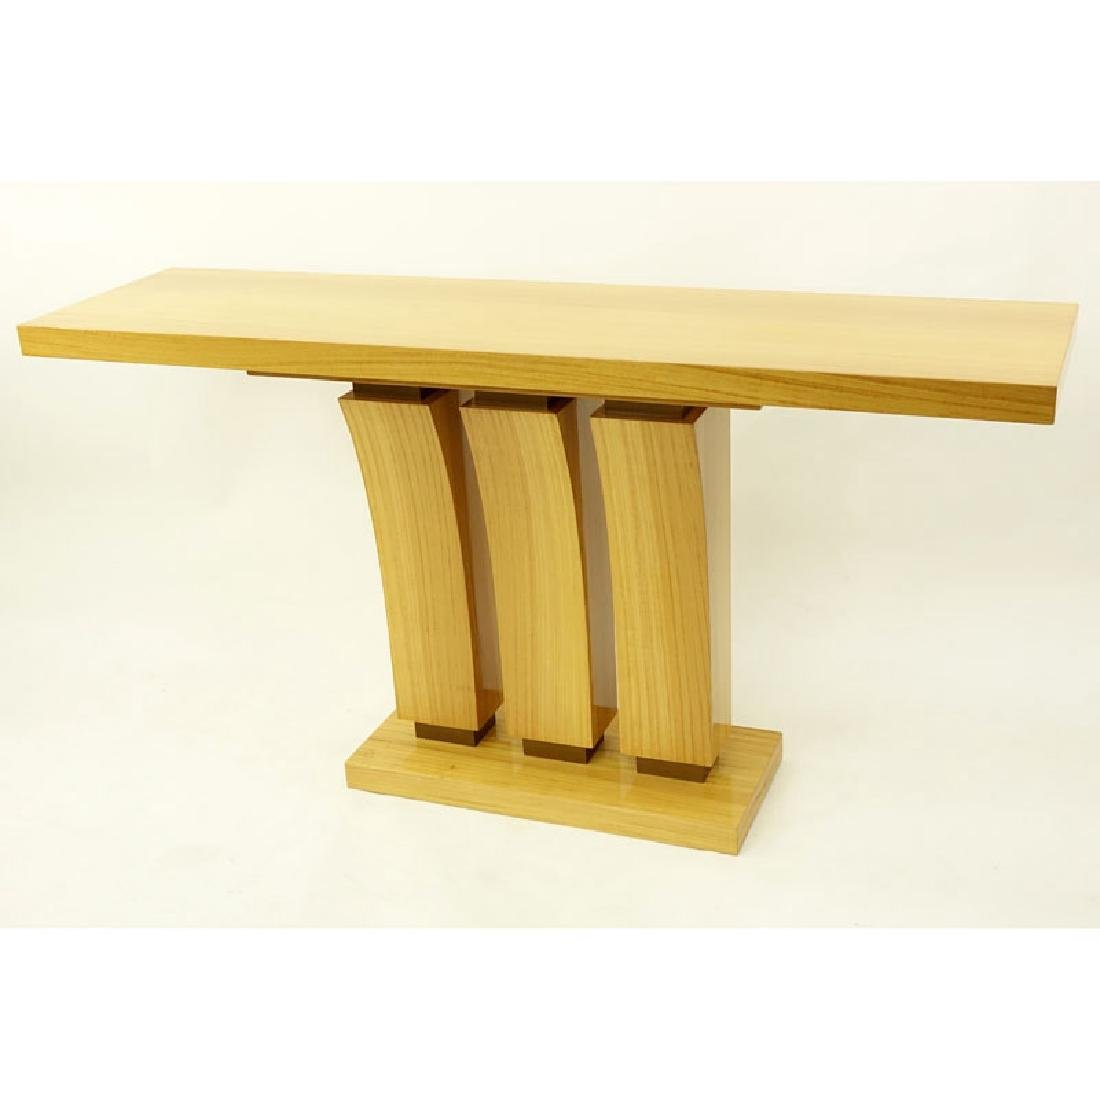 Modern Art Deco Style Satinwood Console Table. Minor